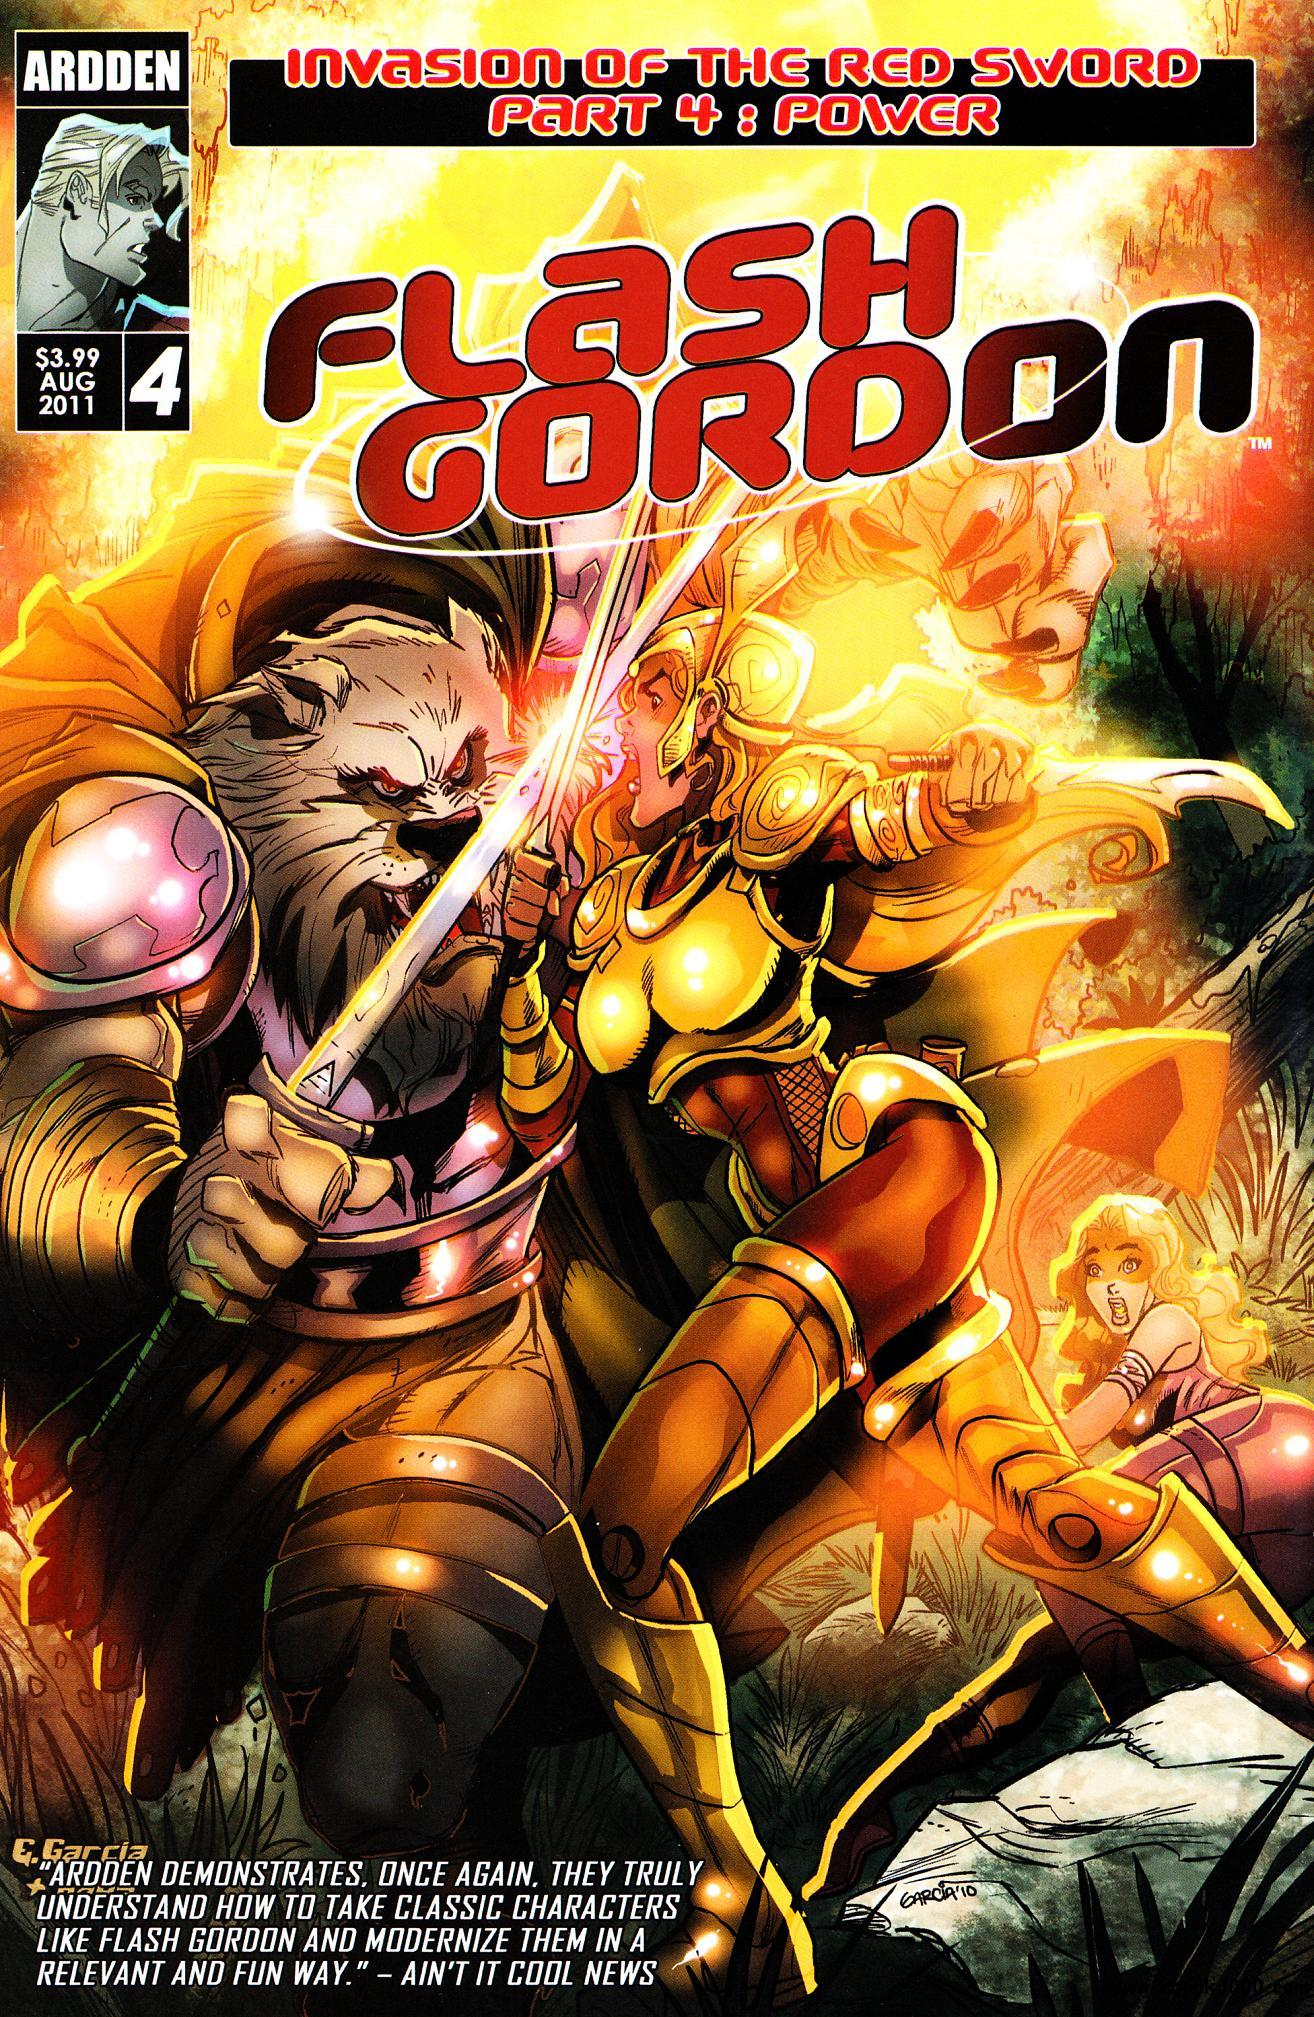 Flash Gordon: Invasion of the Red Sword #4 (2011) free download